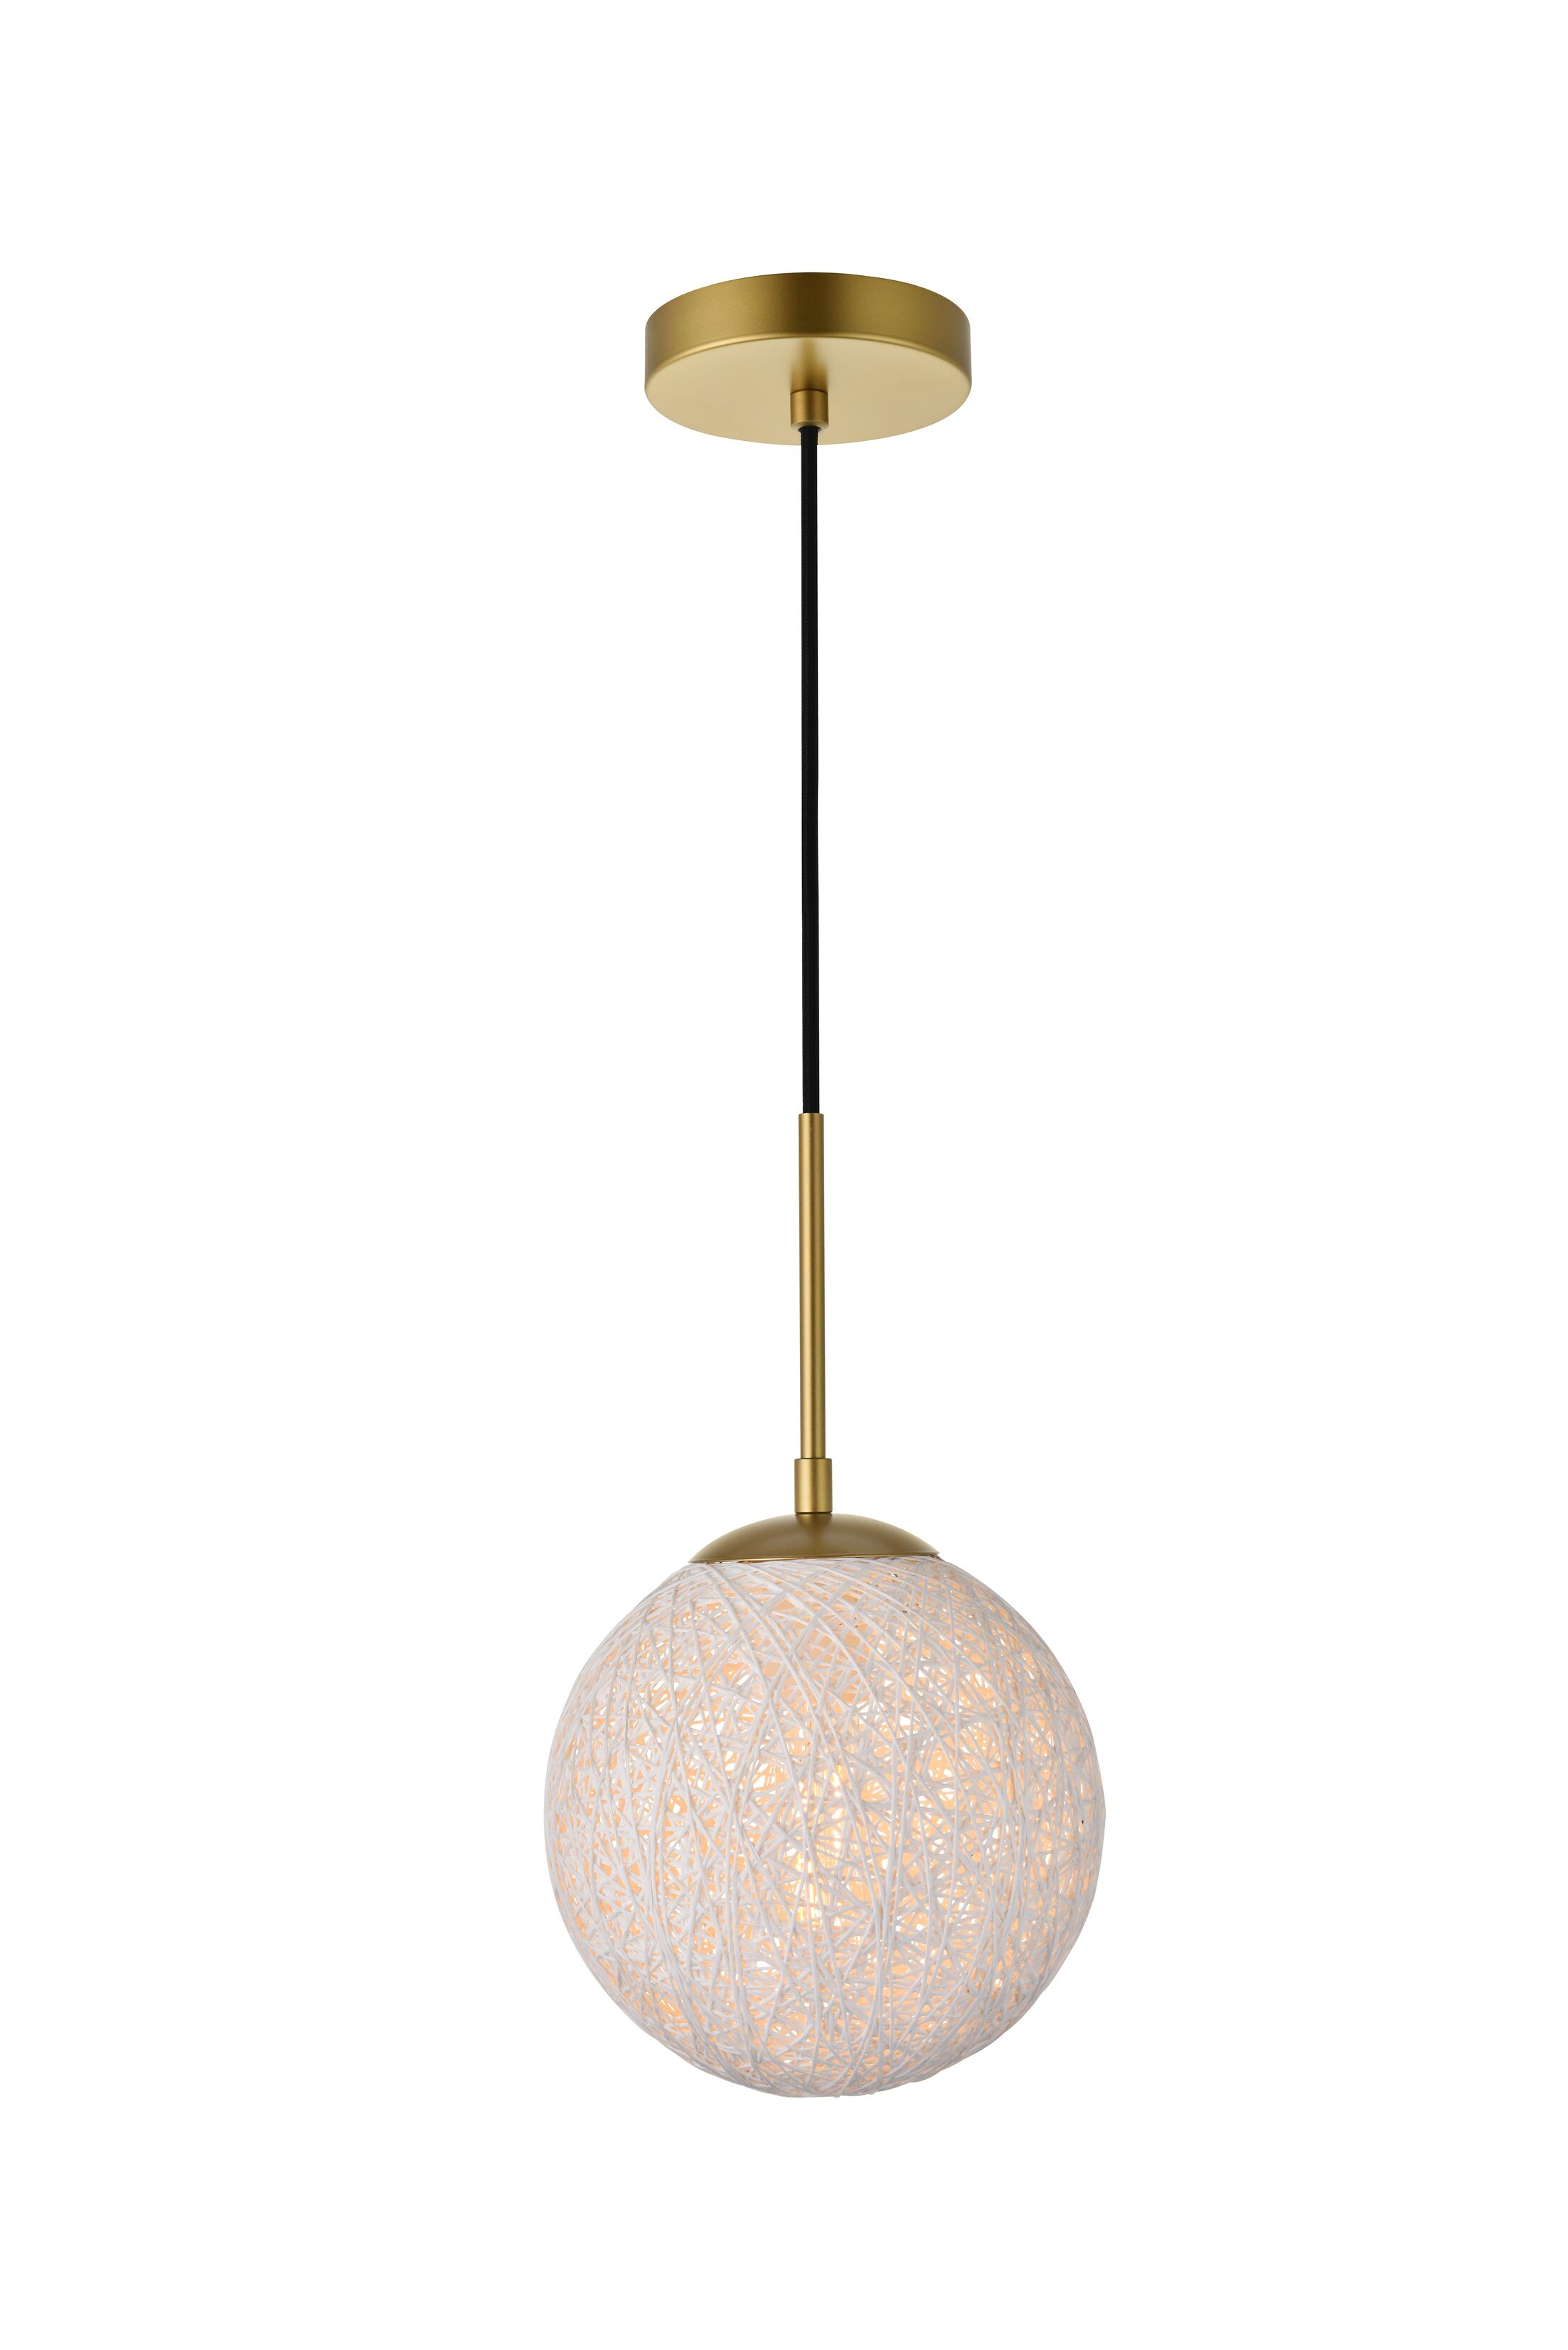 The unique products of this collection exemplify what happens when you take a simple, perfect shape - in this case, a sphere - and transform it into a truly distinctive creation. The dramatic effect is achieved by shaping a round shade made of asymmet...